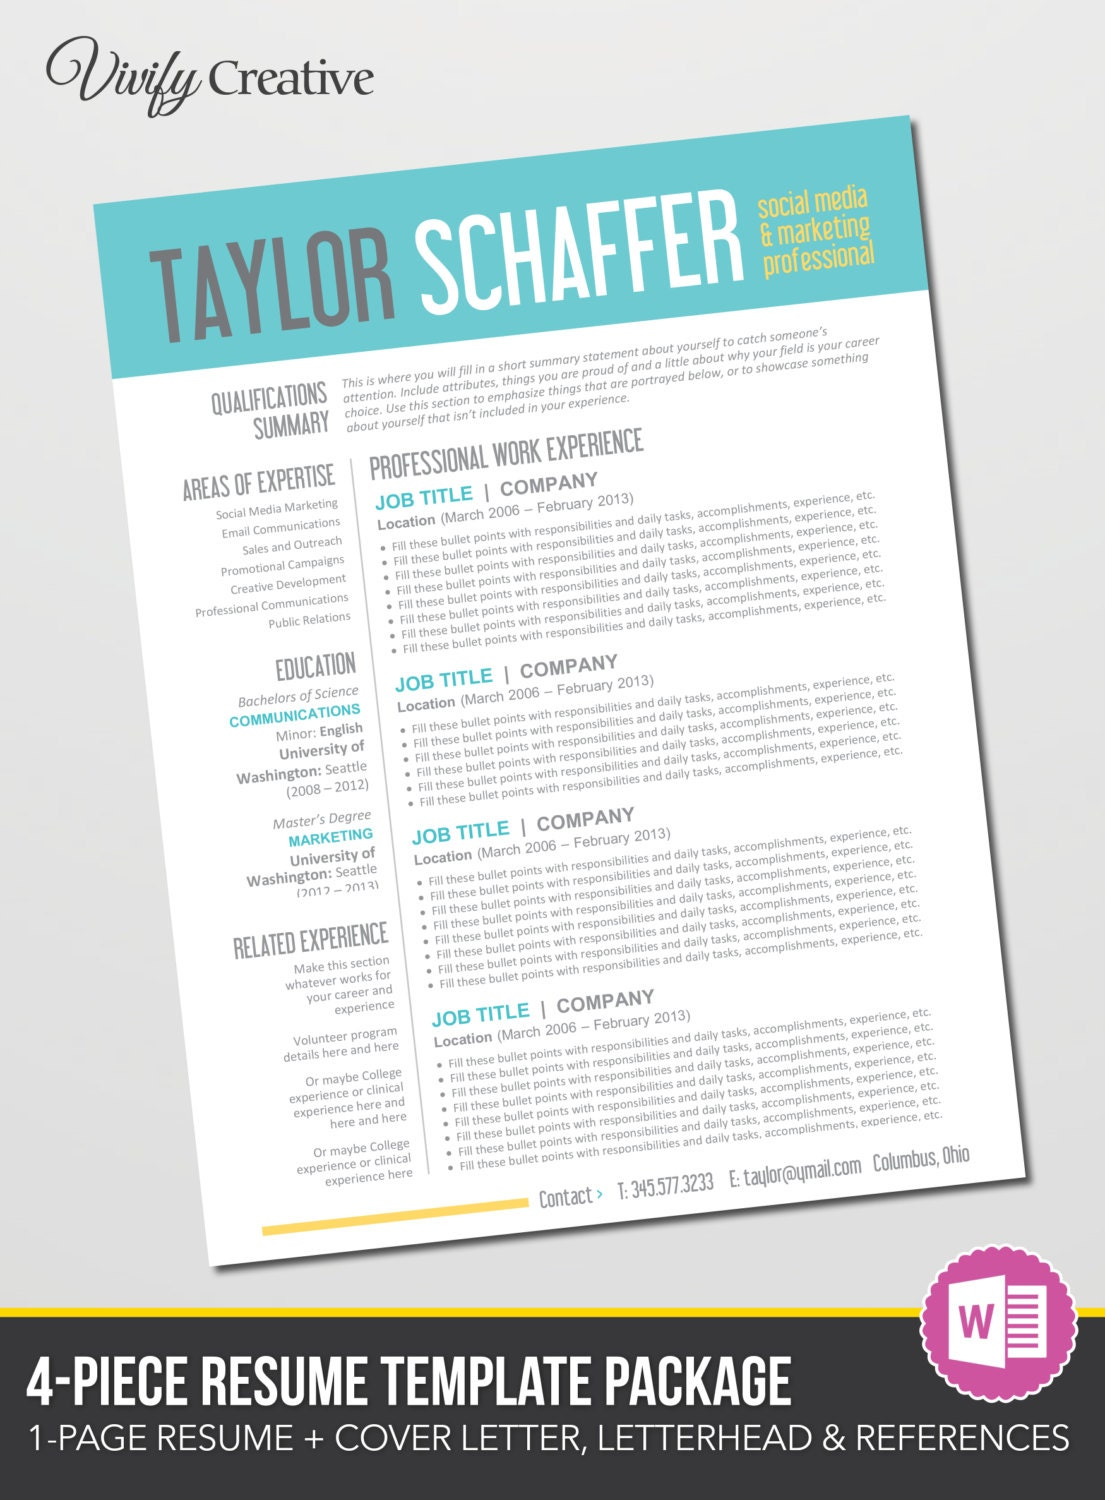 Editable resume in word format spiritdancerdesigns Image collections